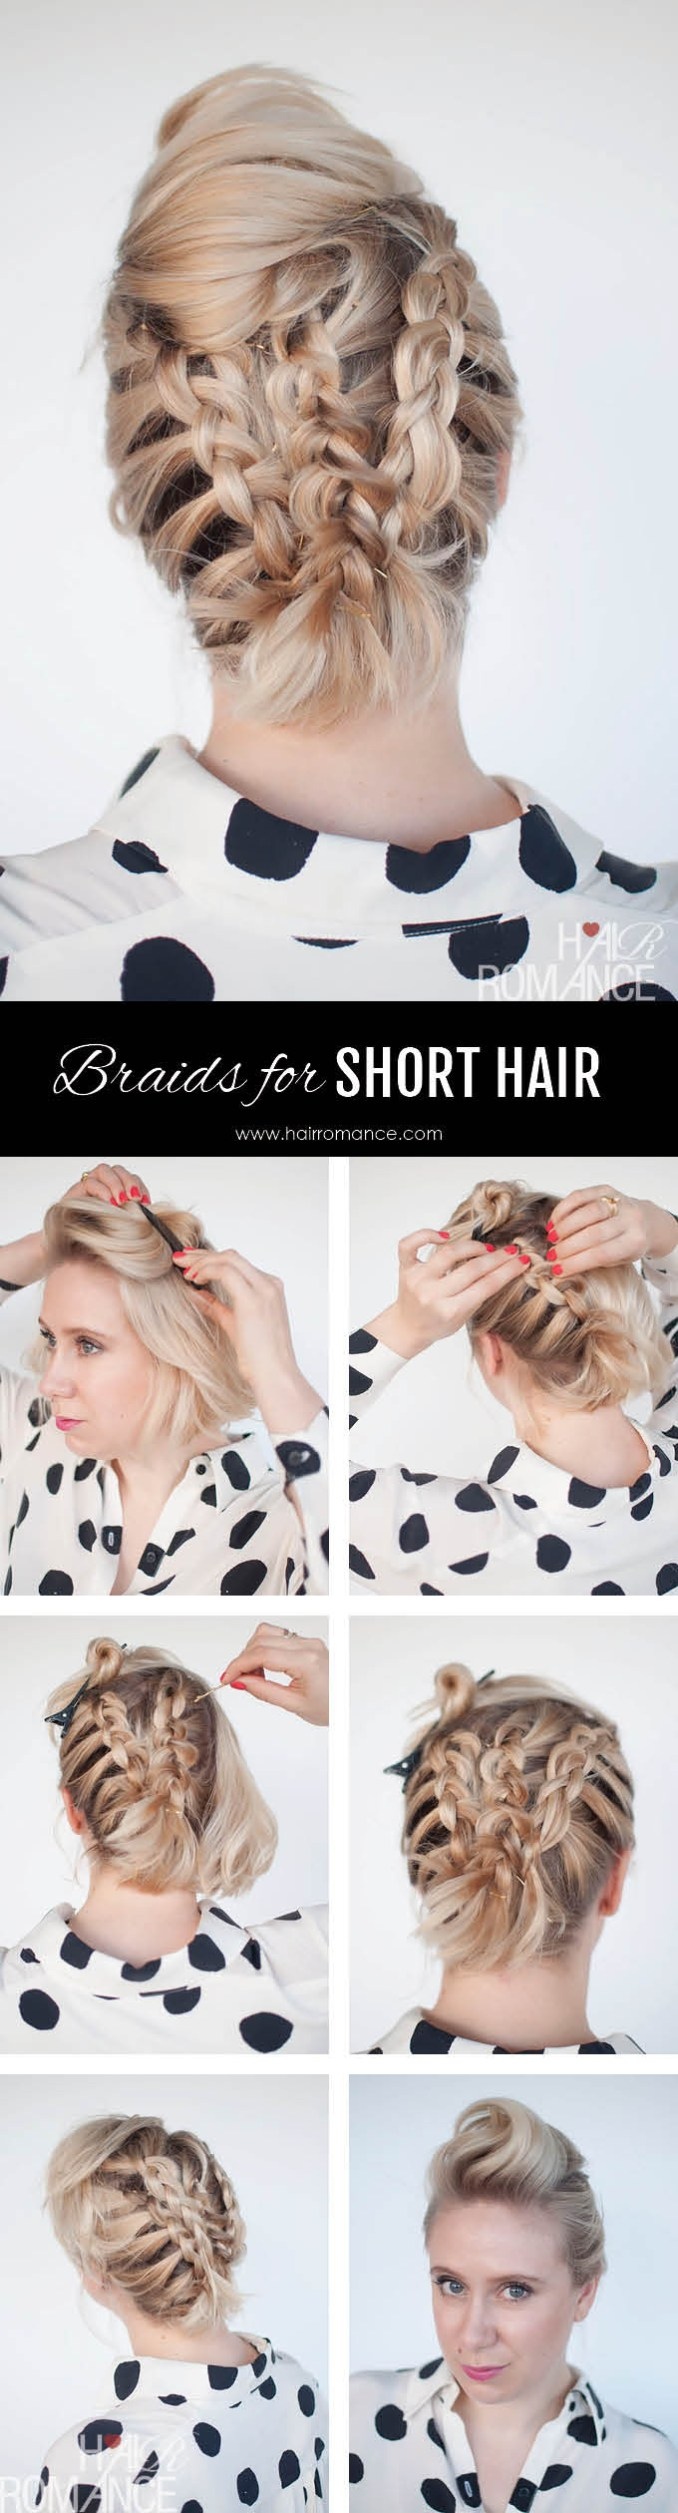 braids in short hair - short hairstyle tutorial - hair romance